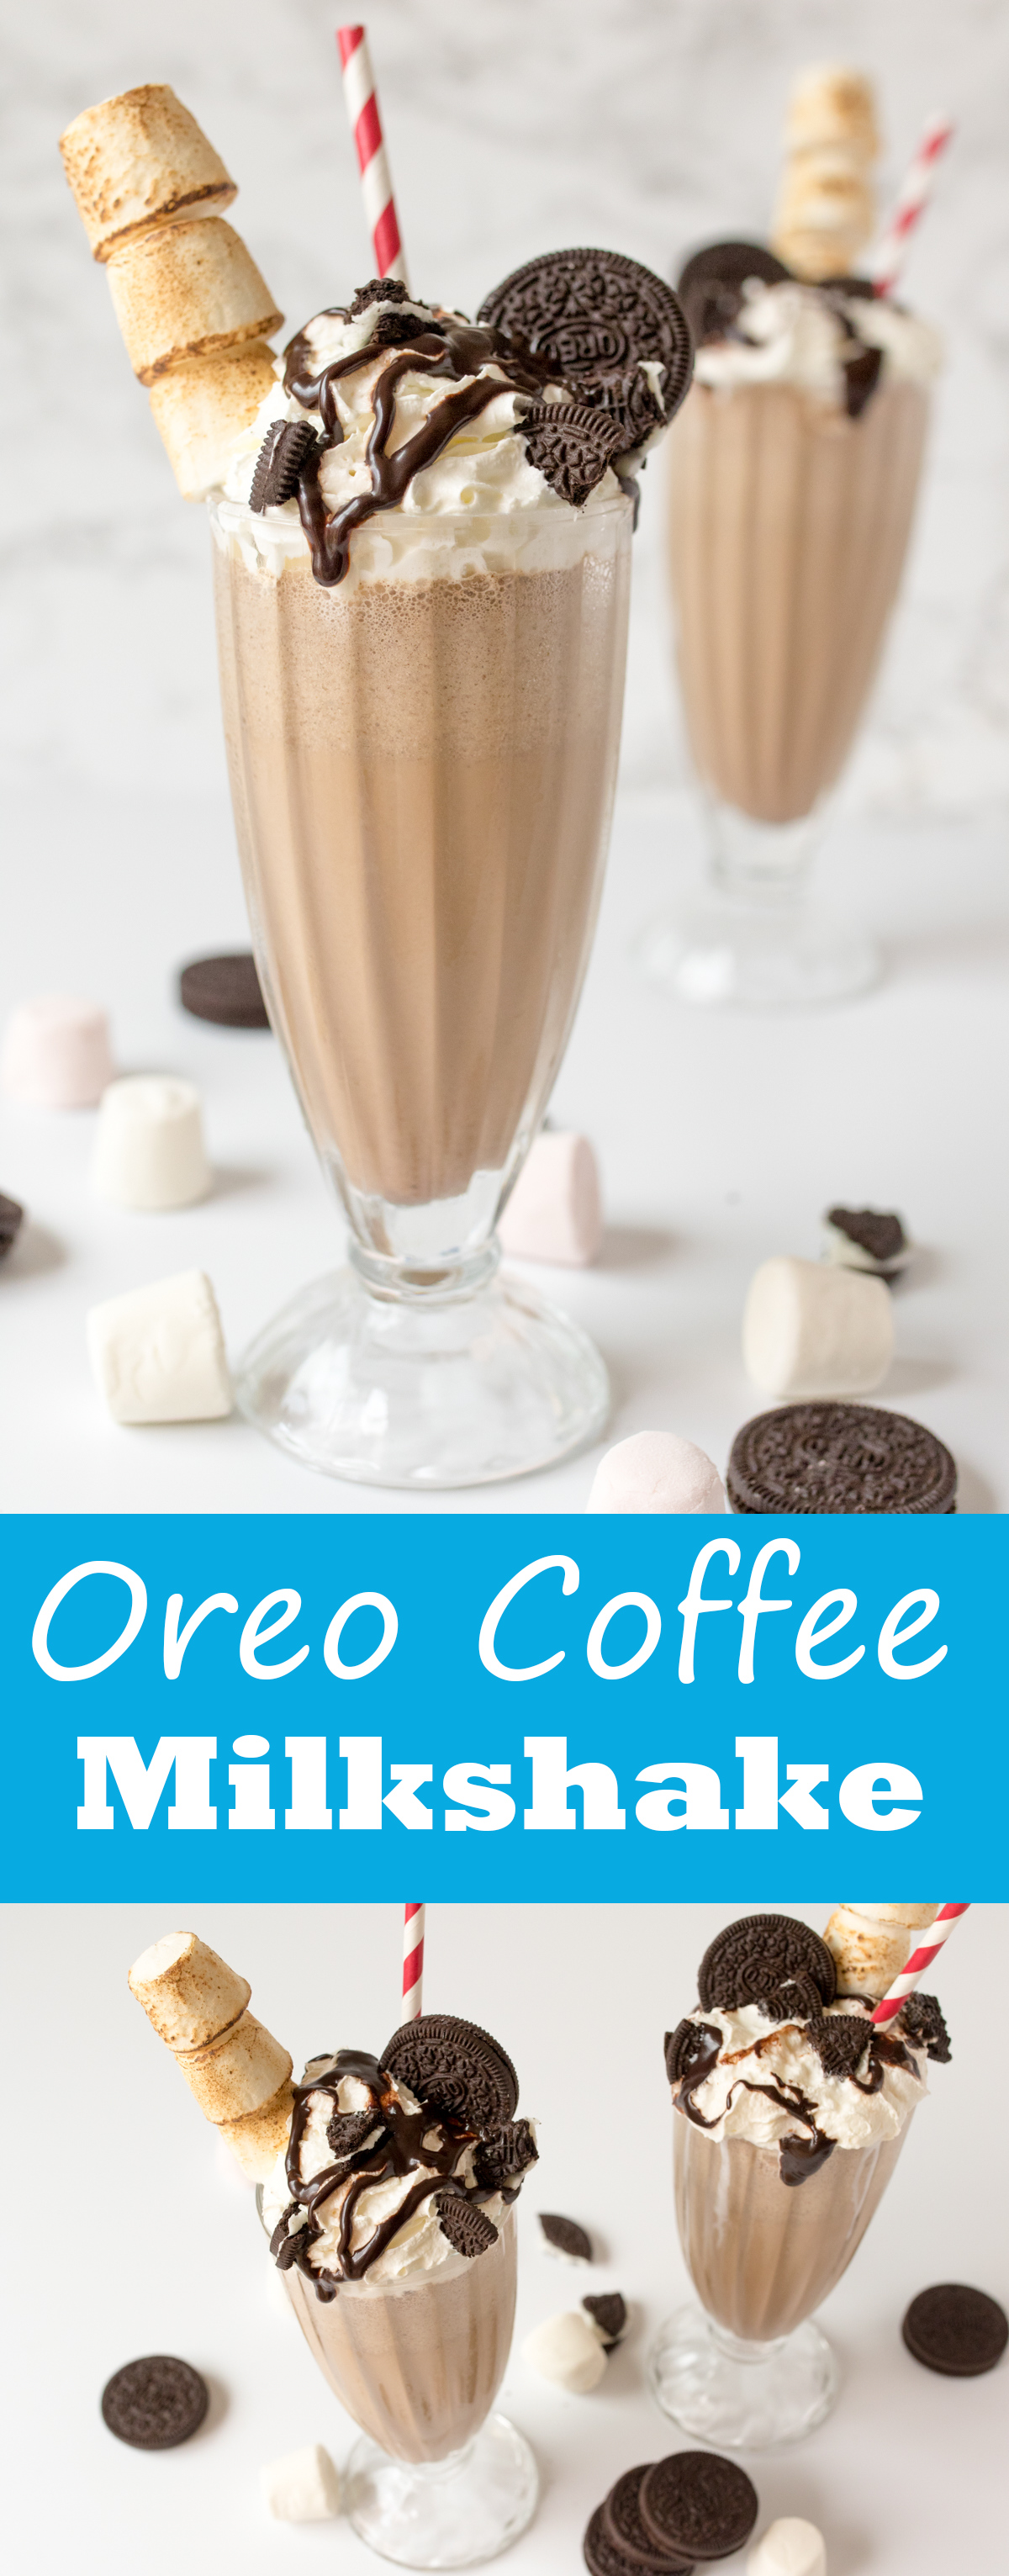 Oreo coffee milkshake pinterest